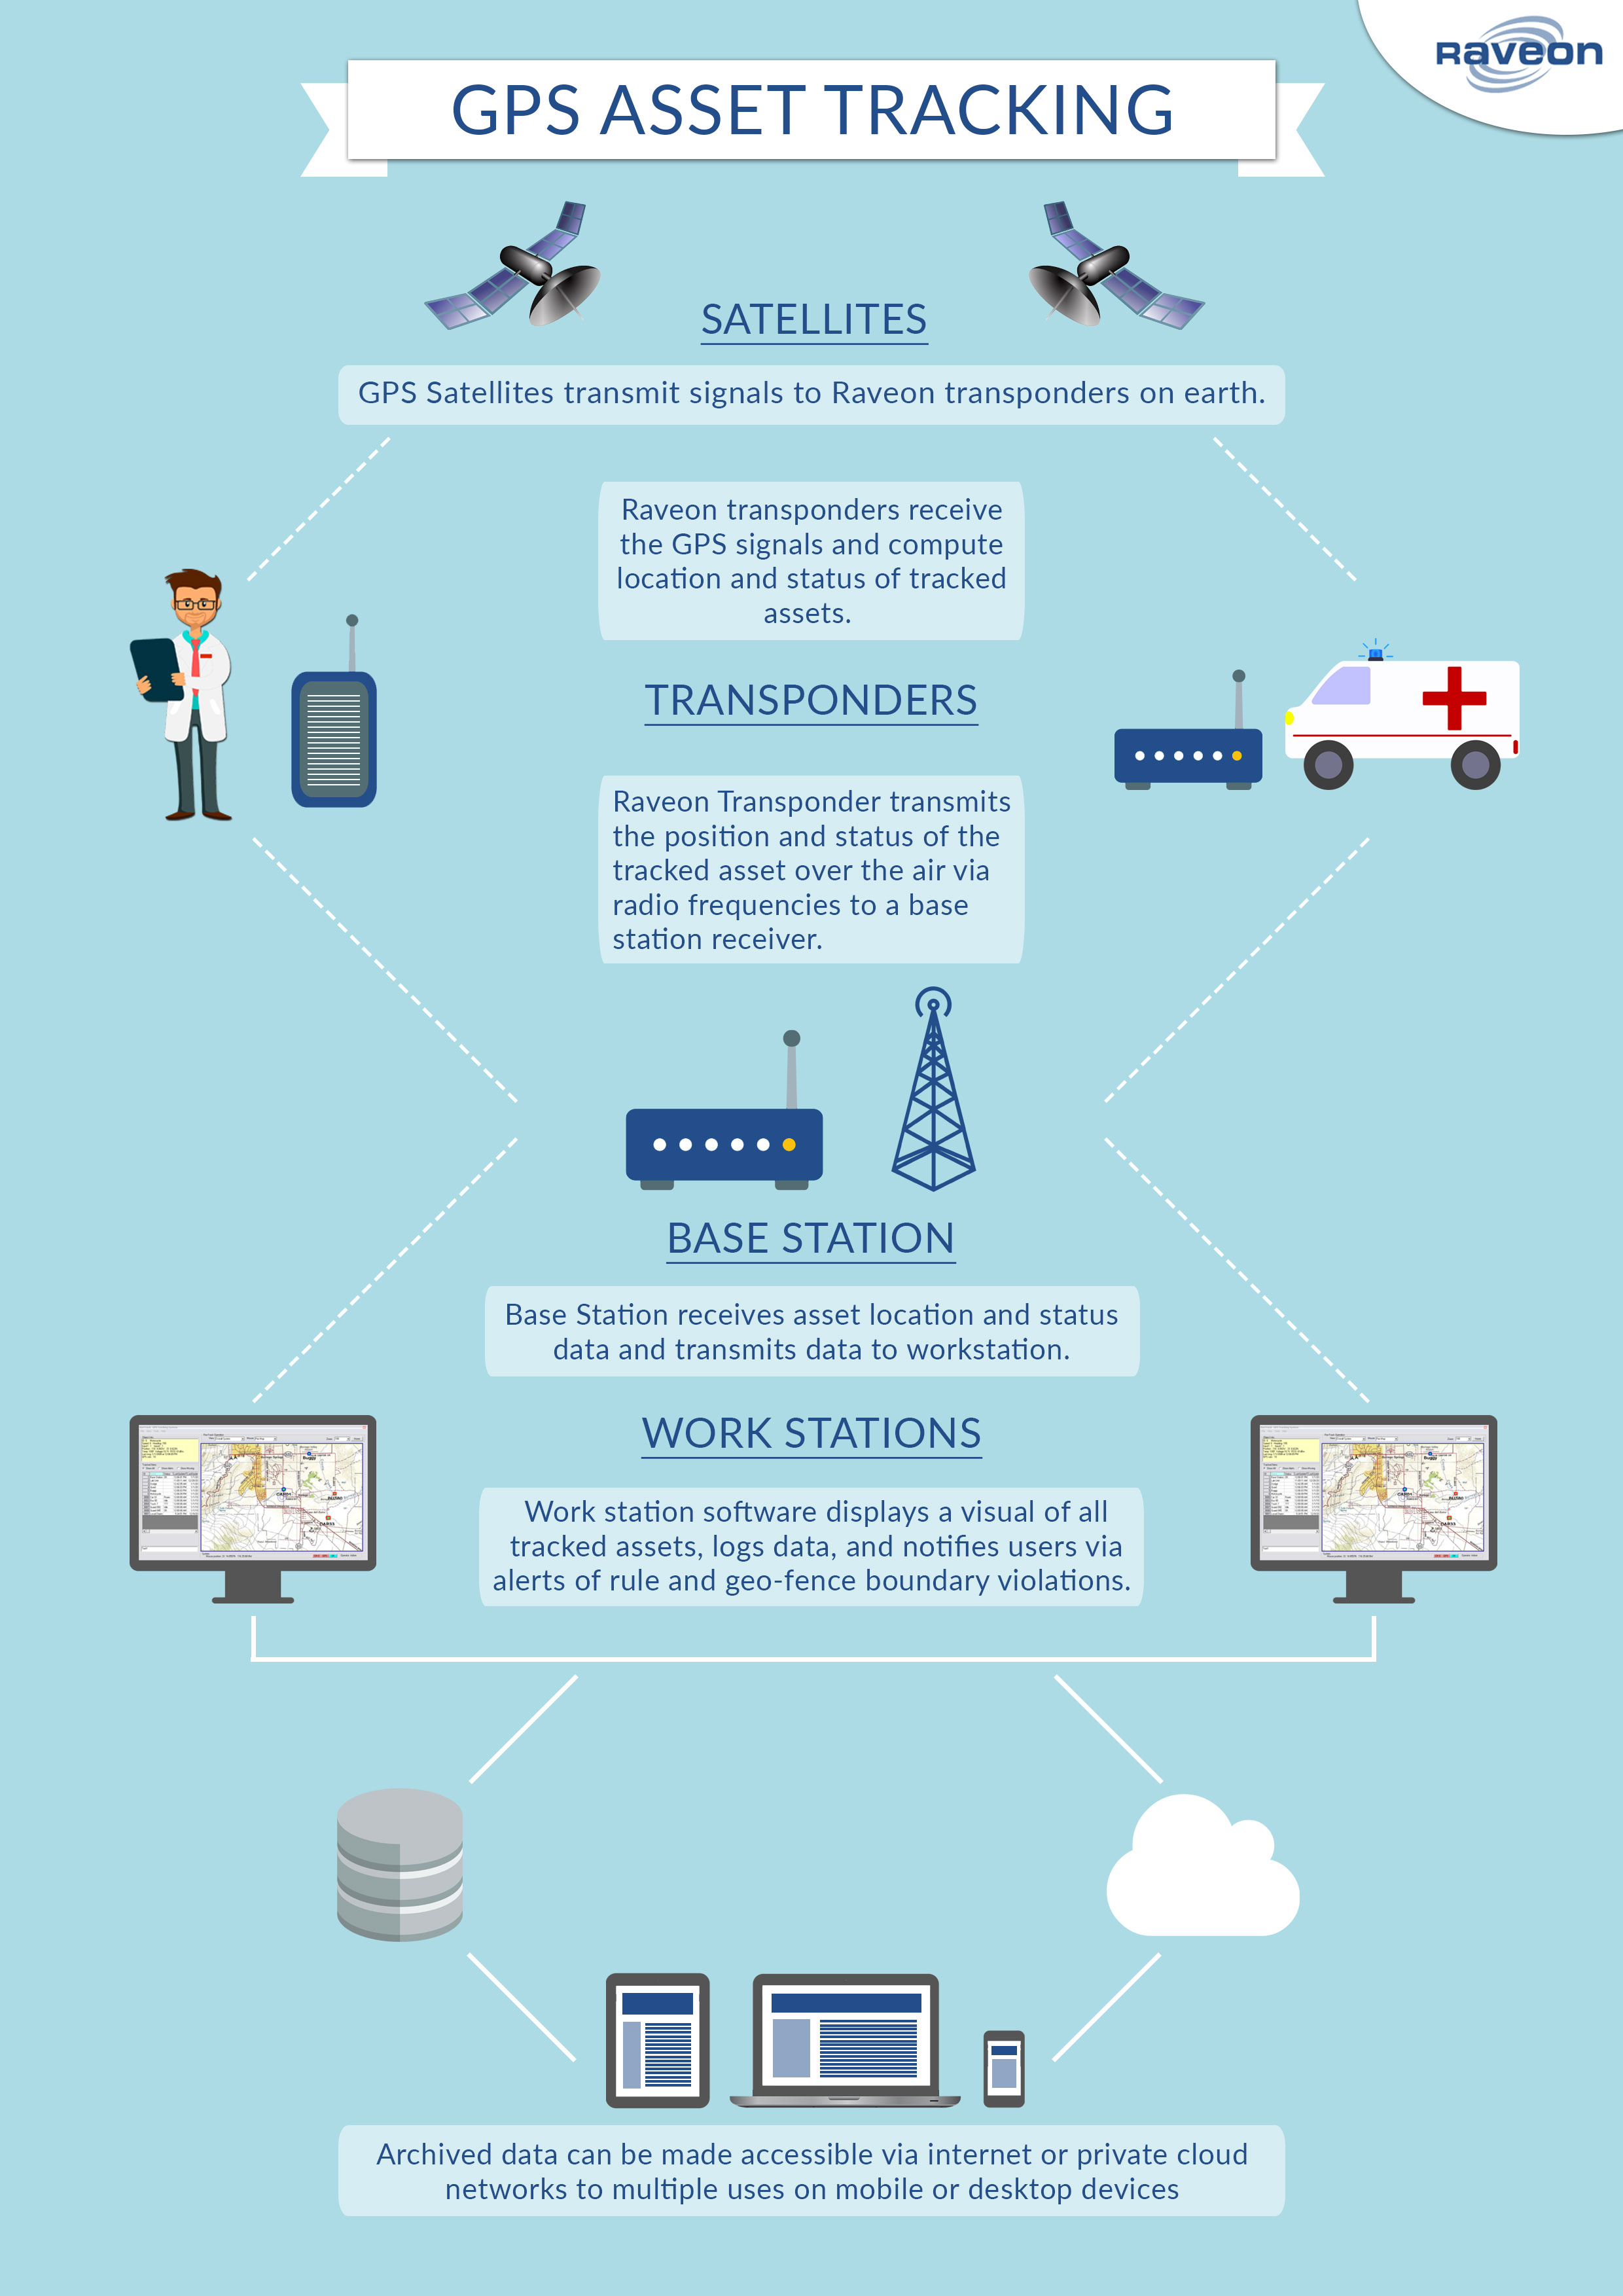 Gps Vehicle Tracking System >> Medical Emergency Asset Tracking Infographic - RavTrack ...